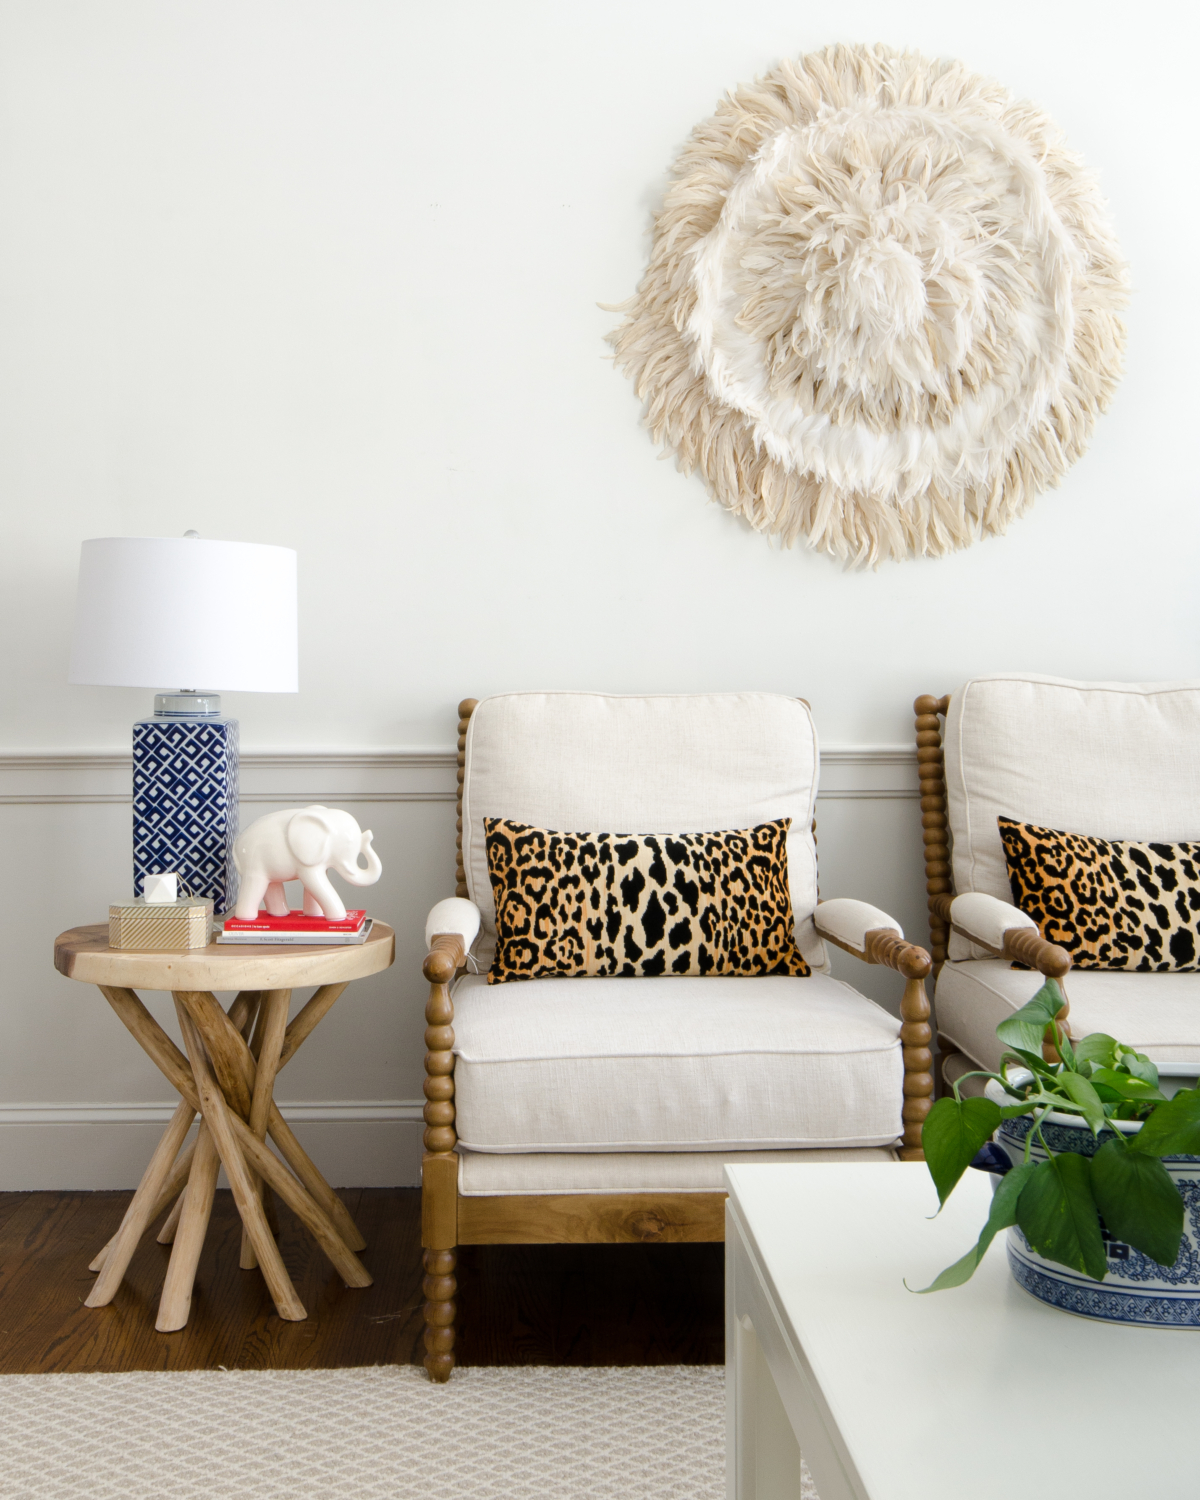 DIY feather wall hanging juju hat, spool chairs, Braemore Jamil Natural leopard pillows, rustic branch table